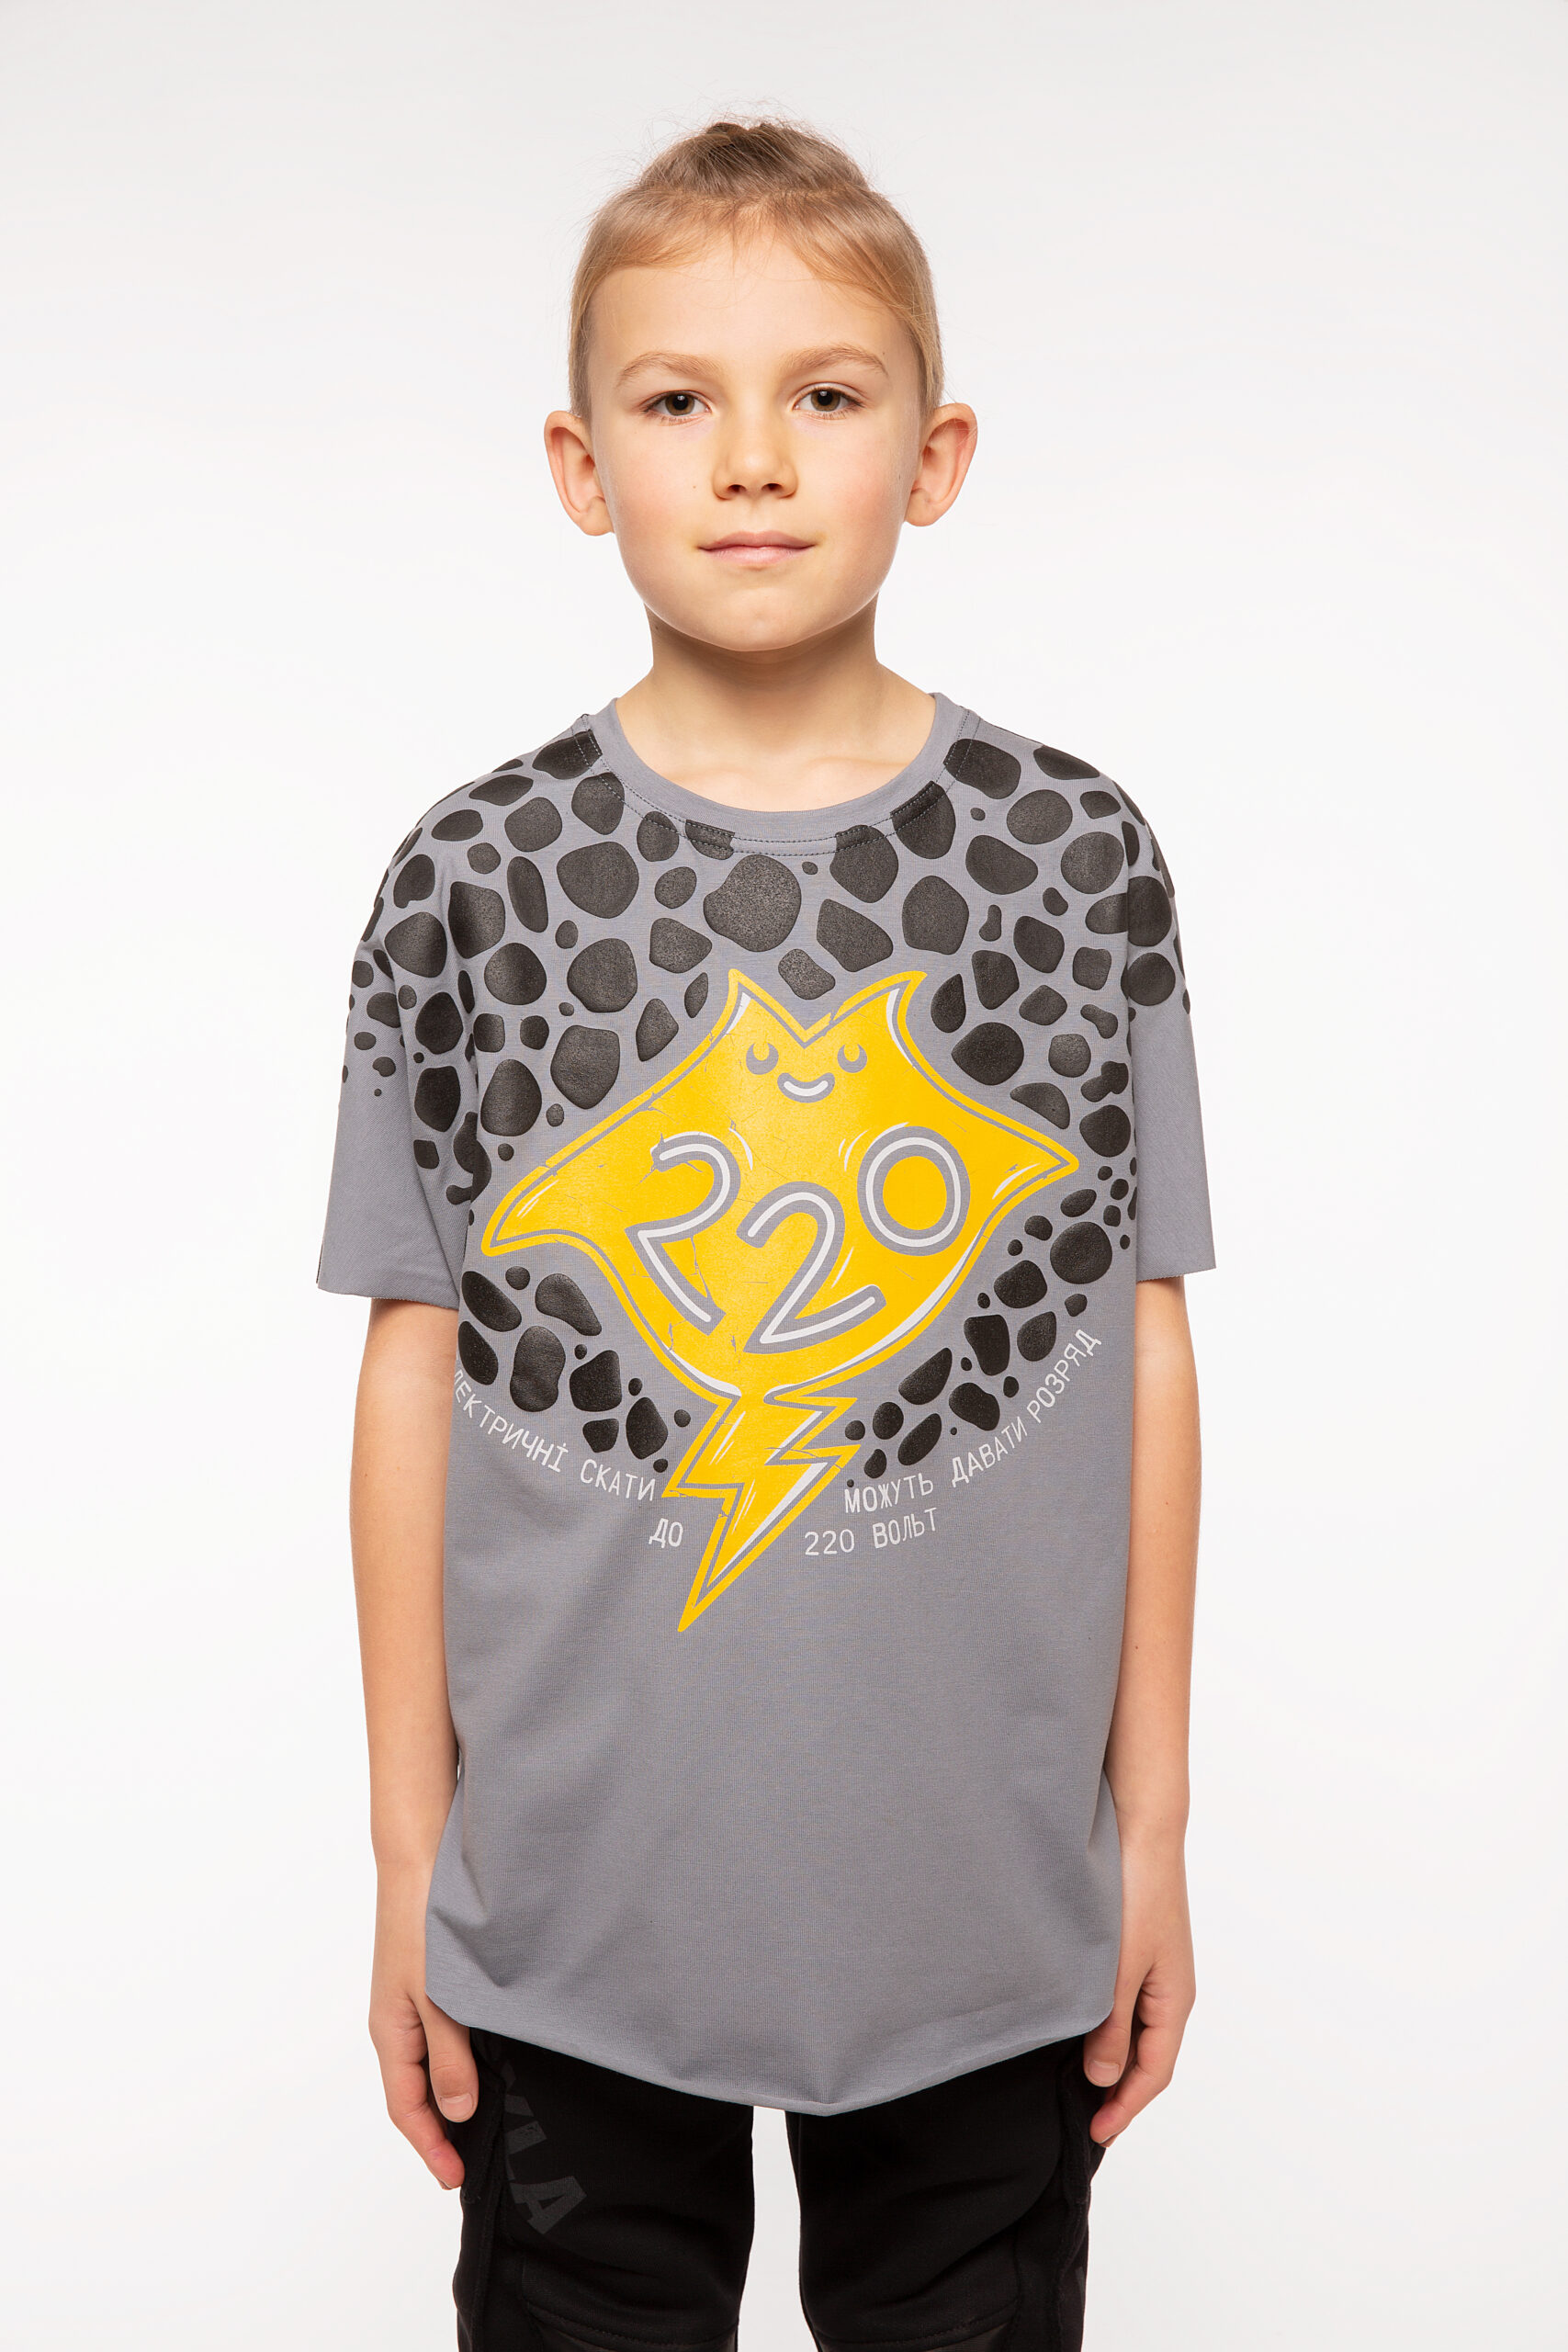 Kids T-Shirt Stingray. Color dark gray. Unisex T-shirt, well suited for both boys and girls.